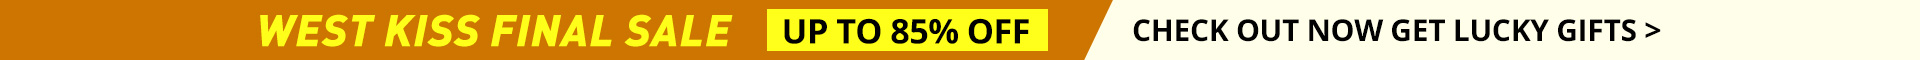 hd lace wigs 41% off and extra 7% off